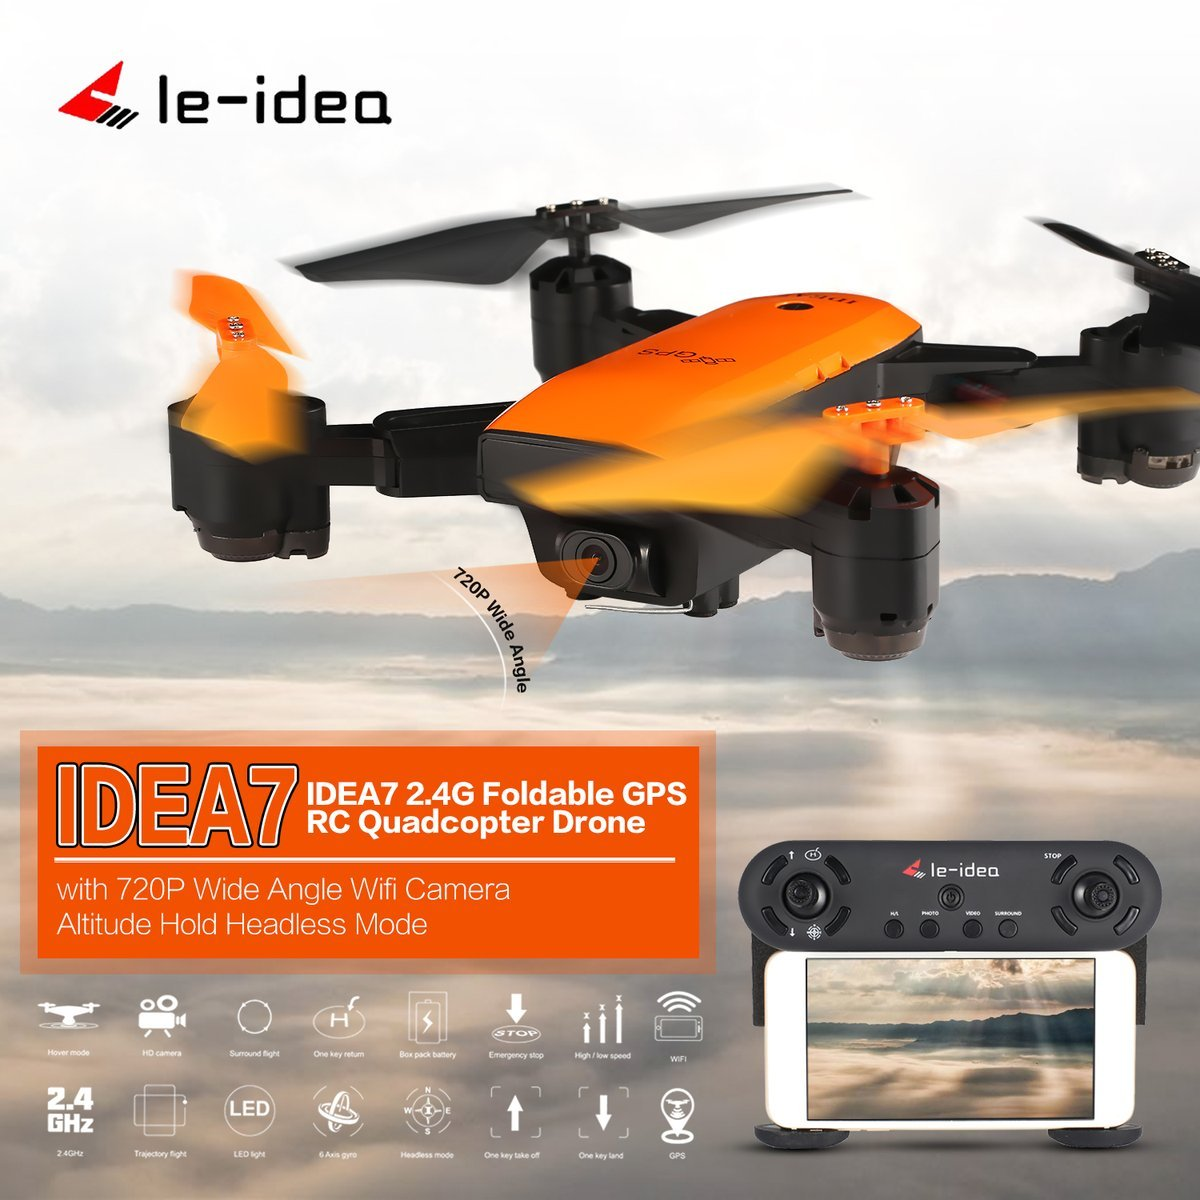 Gugutogo Le-Idee IDEA7 2,4G RC Drone Faltbare Quadcopter mit 720 P Weitwinkel Wifi Kamera GPS Höhe Halten Headless One Key Return (Farbe  Orange)